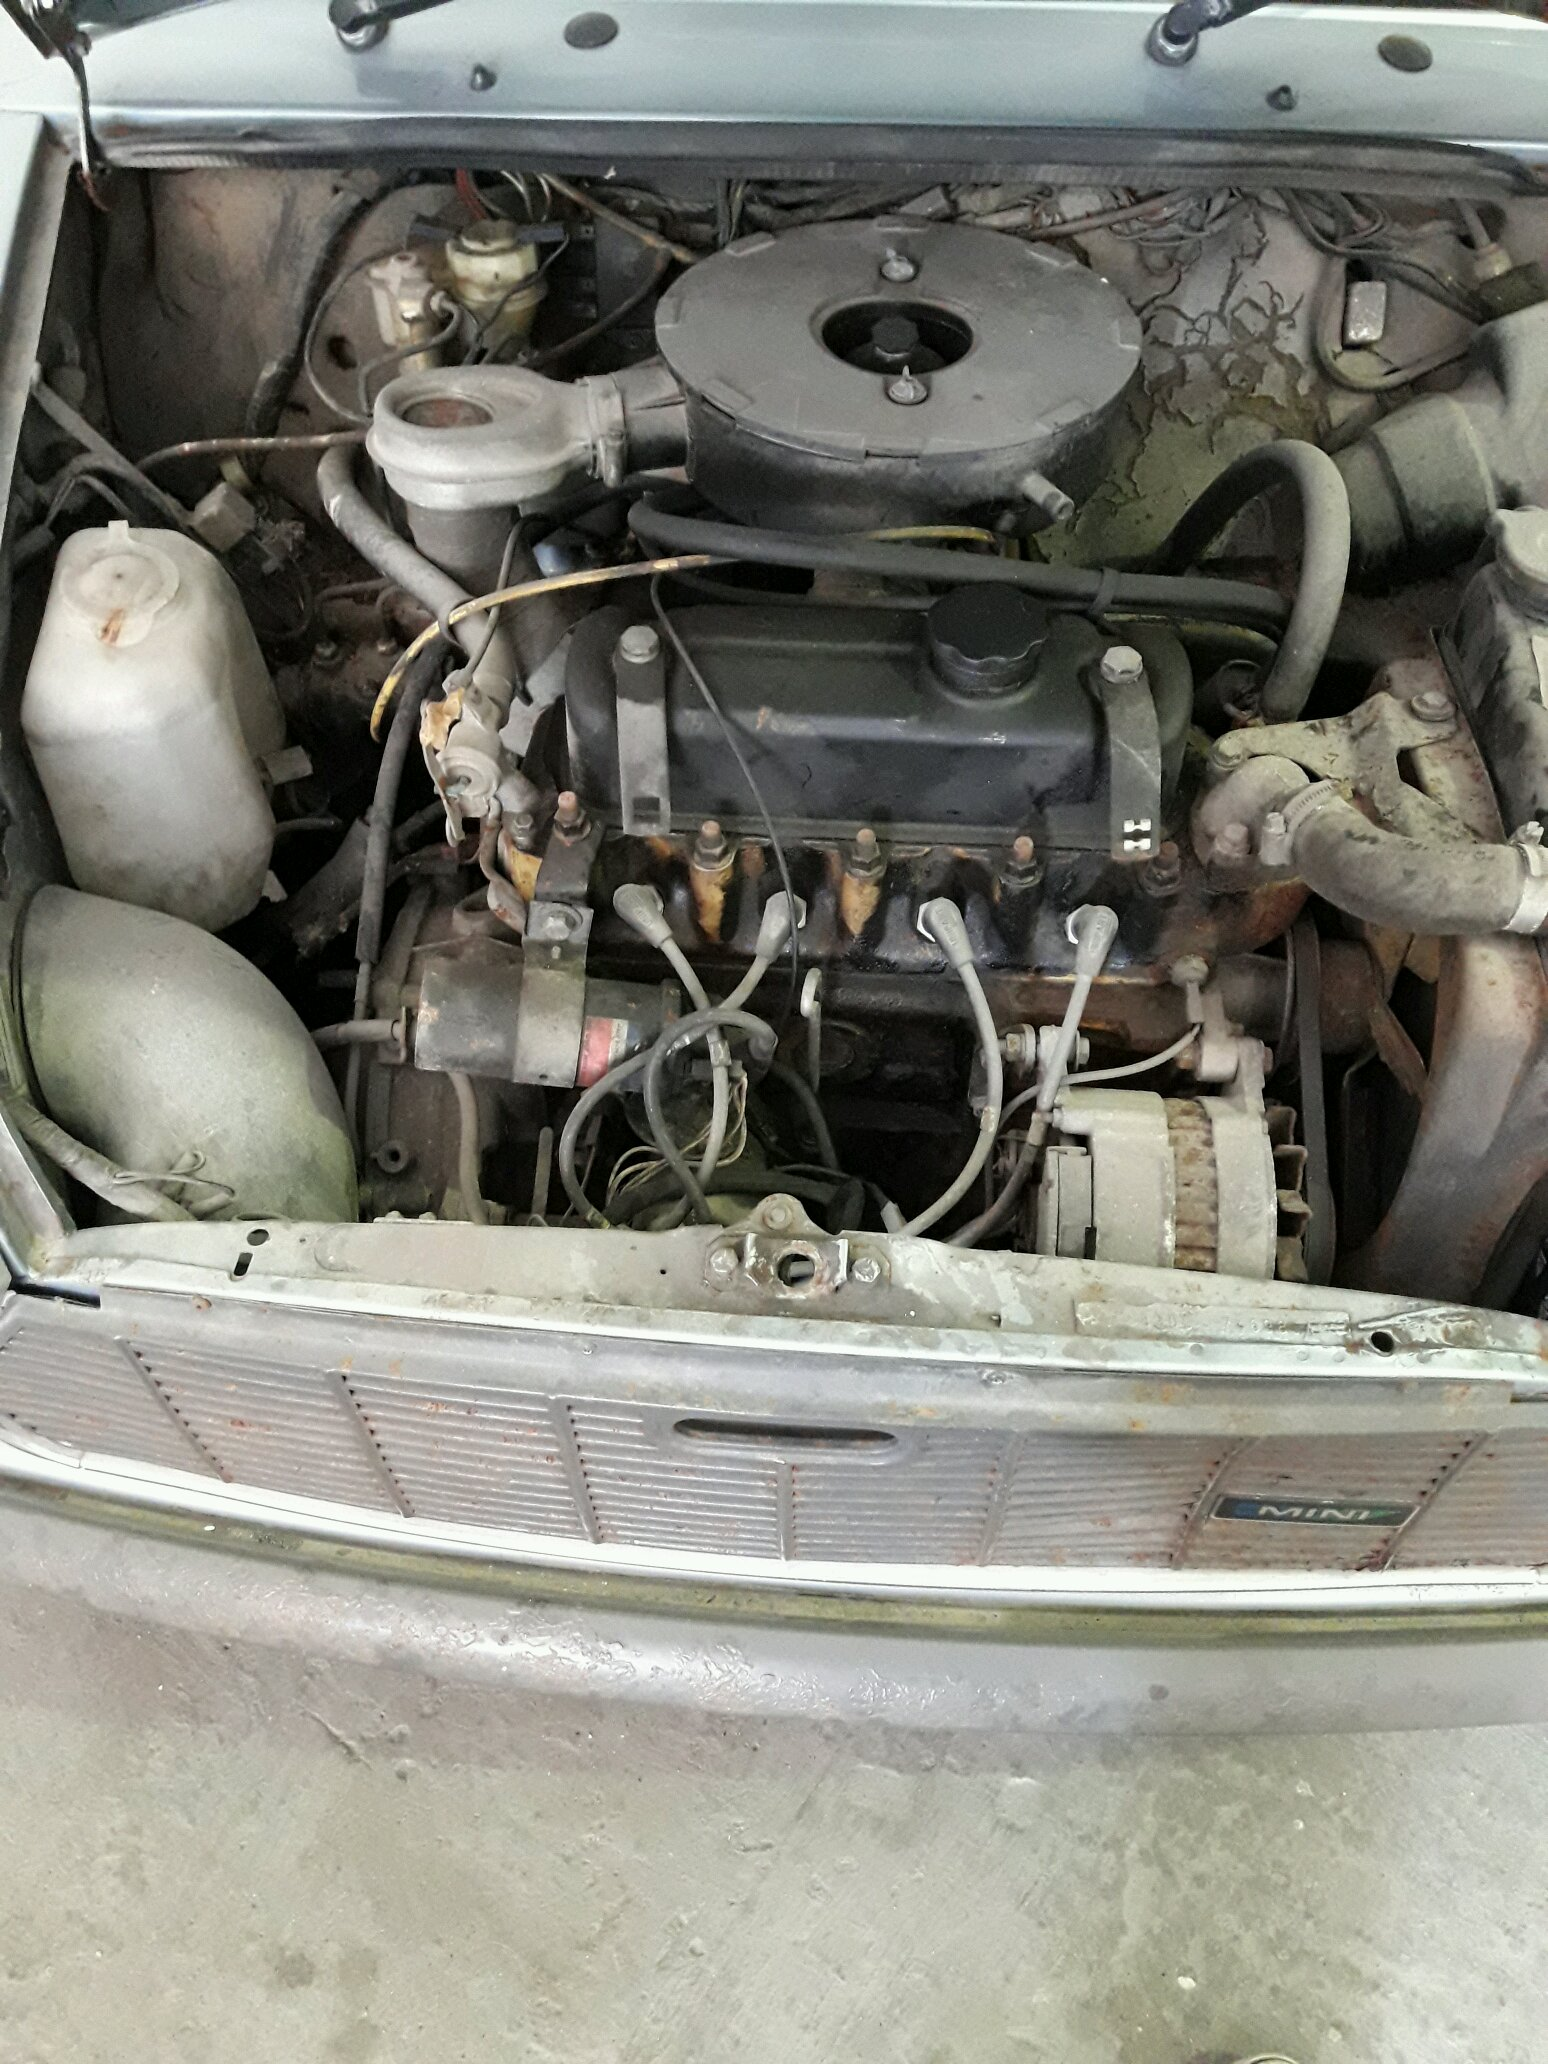 How To Clean Engine Bay >> Any Tips On How To Clean The Engine Engine Bay